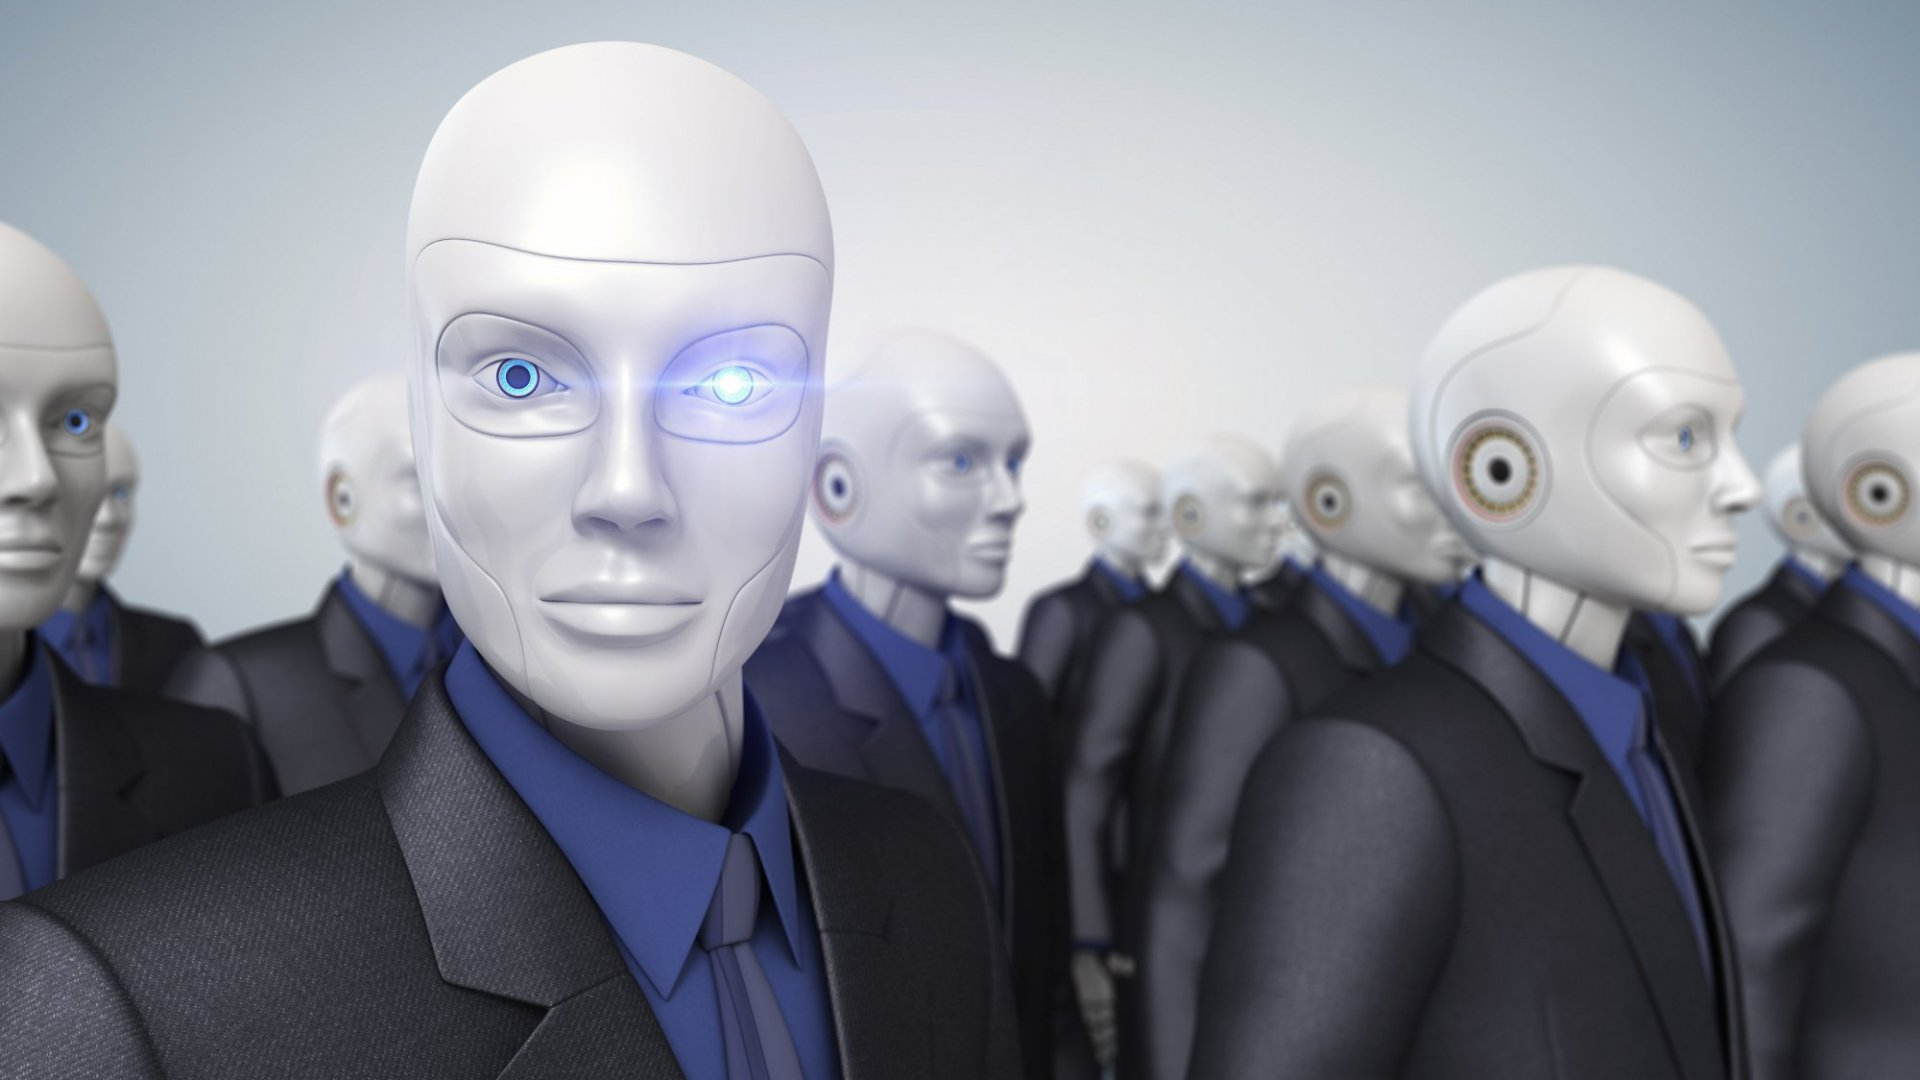 9 Tech Entrepreneurs Who Believe Robots Could Soon Replace Human Workers